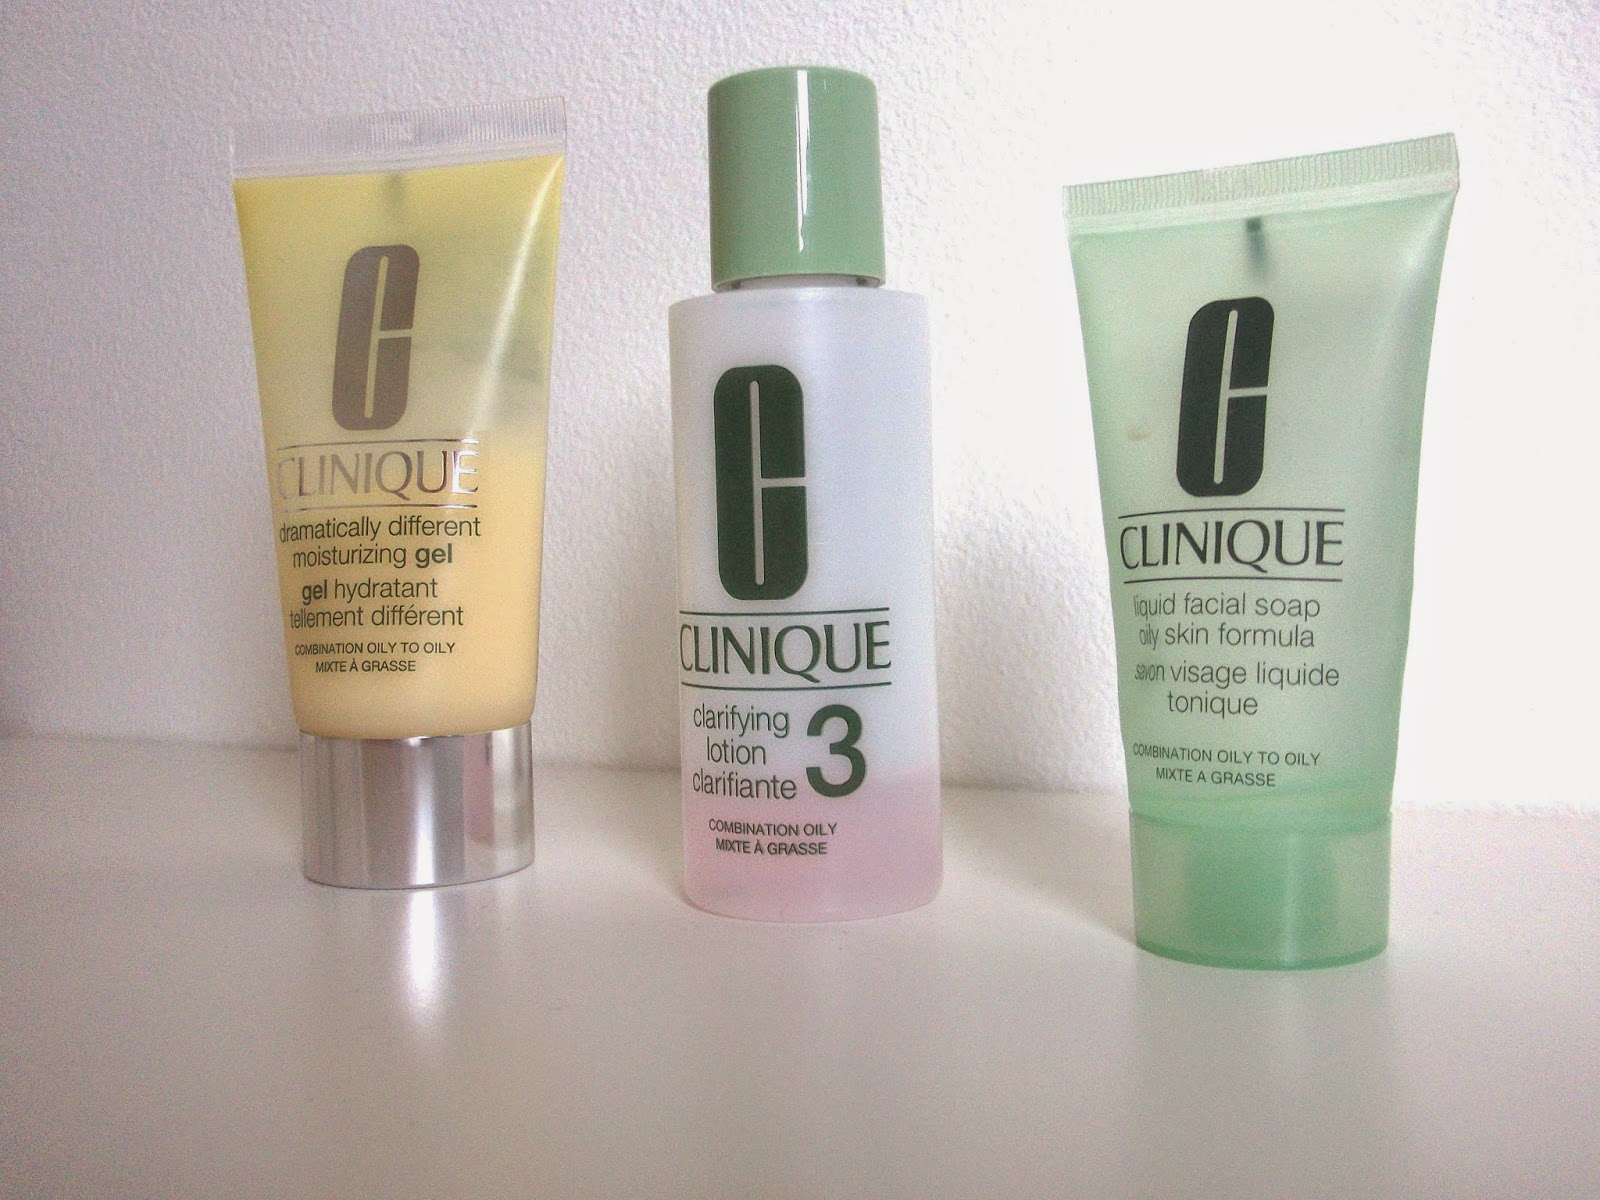 Clinique Skincare | Review